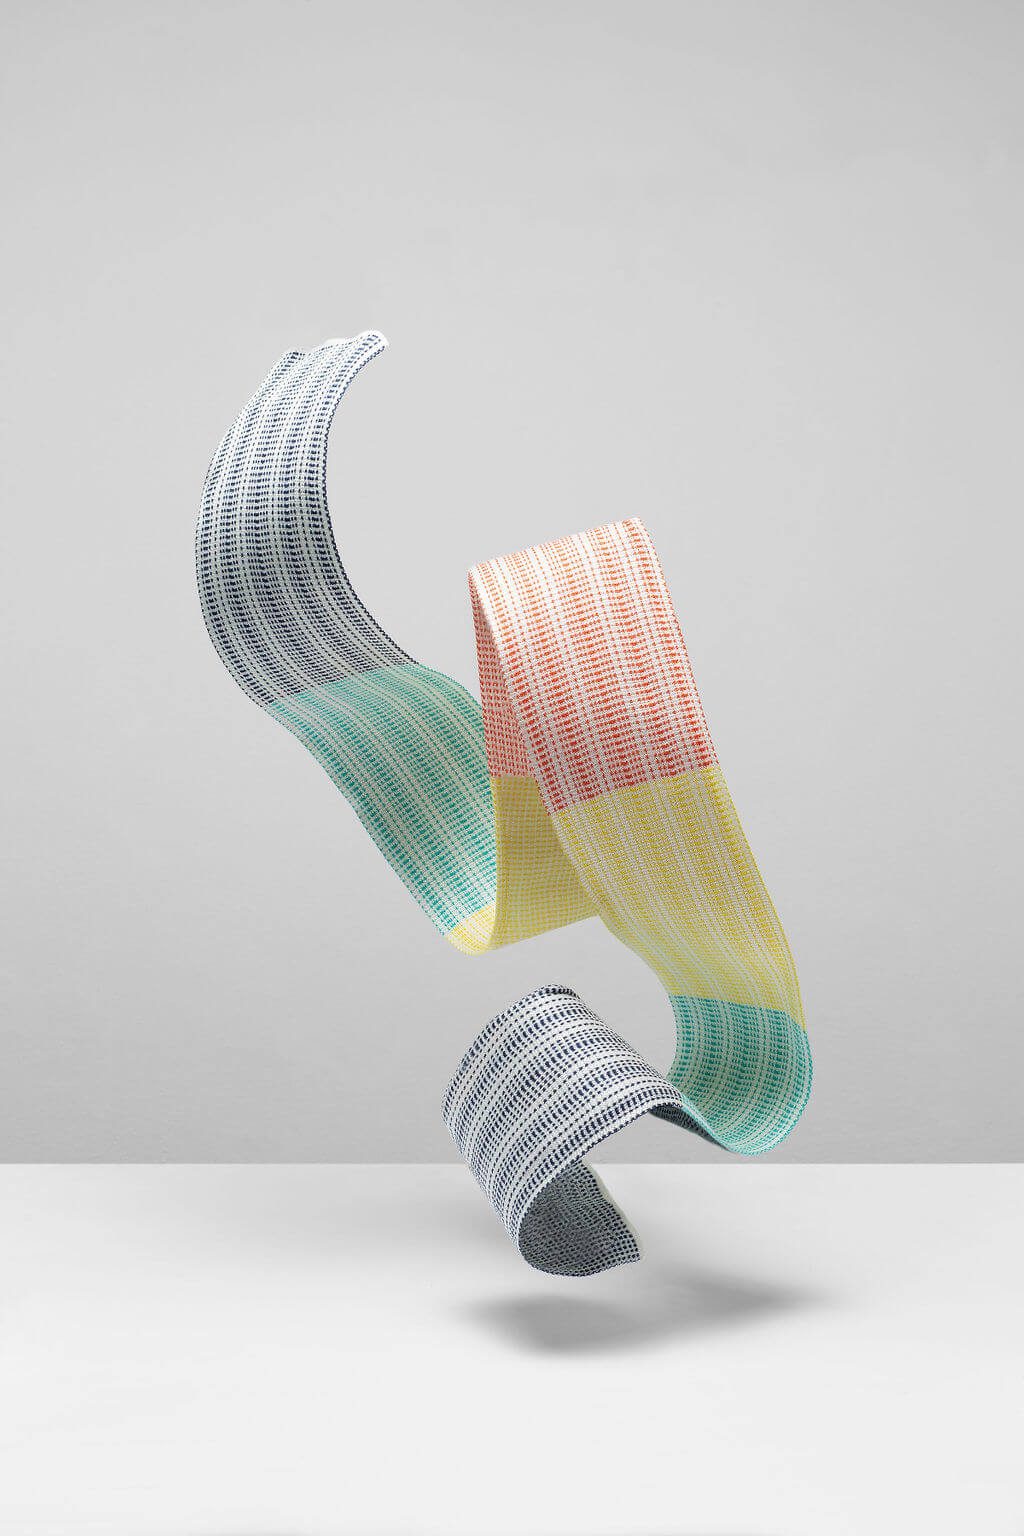 Designer silk scarf for men and women. A skinny silk scarf in pastel colours made in Scotland. Luxury Scottish Knitwear design by Collingwood-Norris.jpg